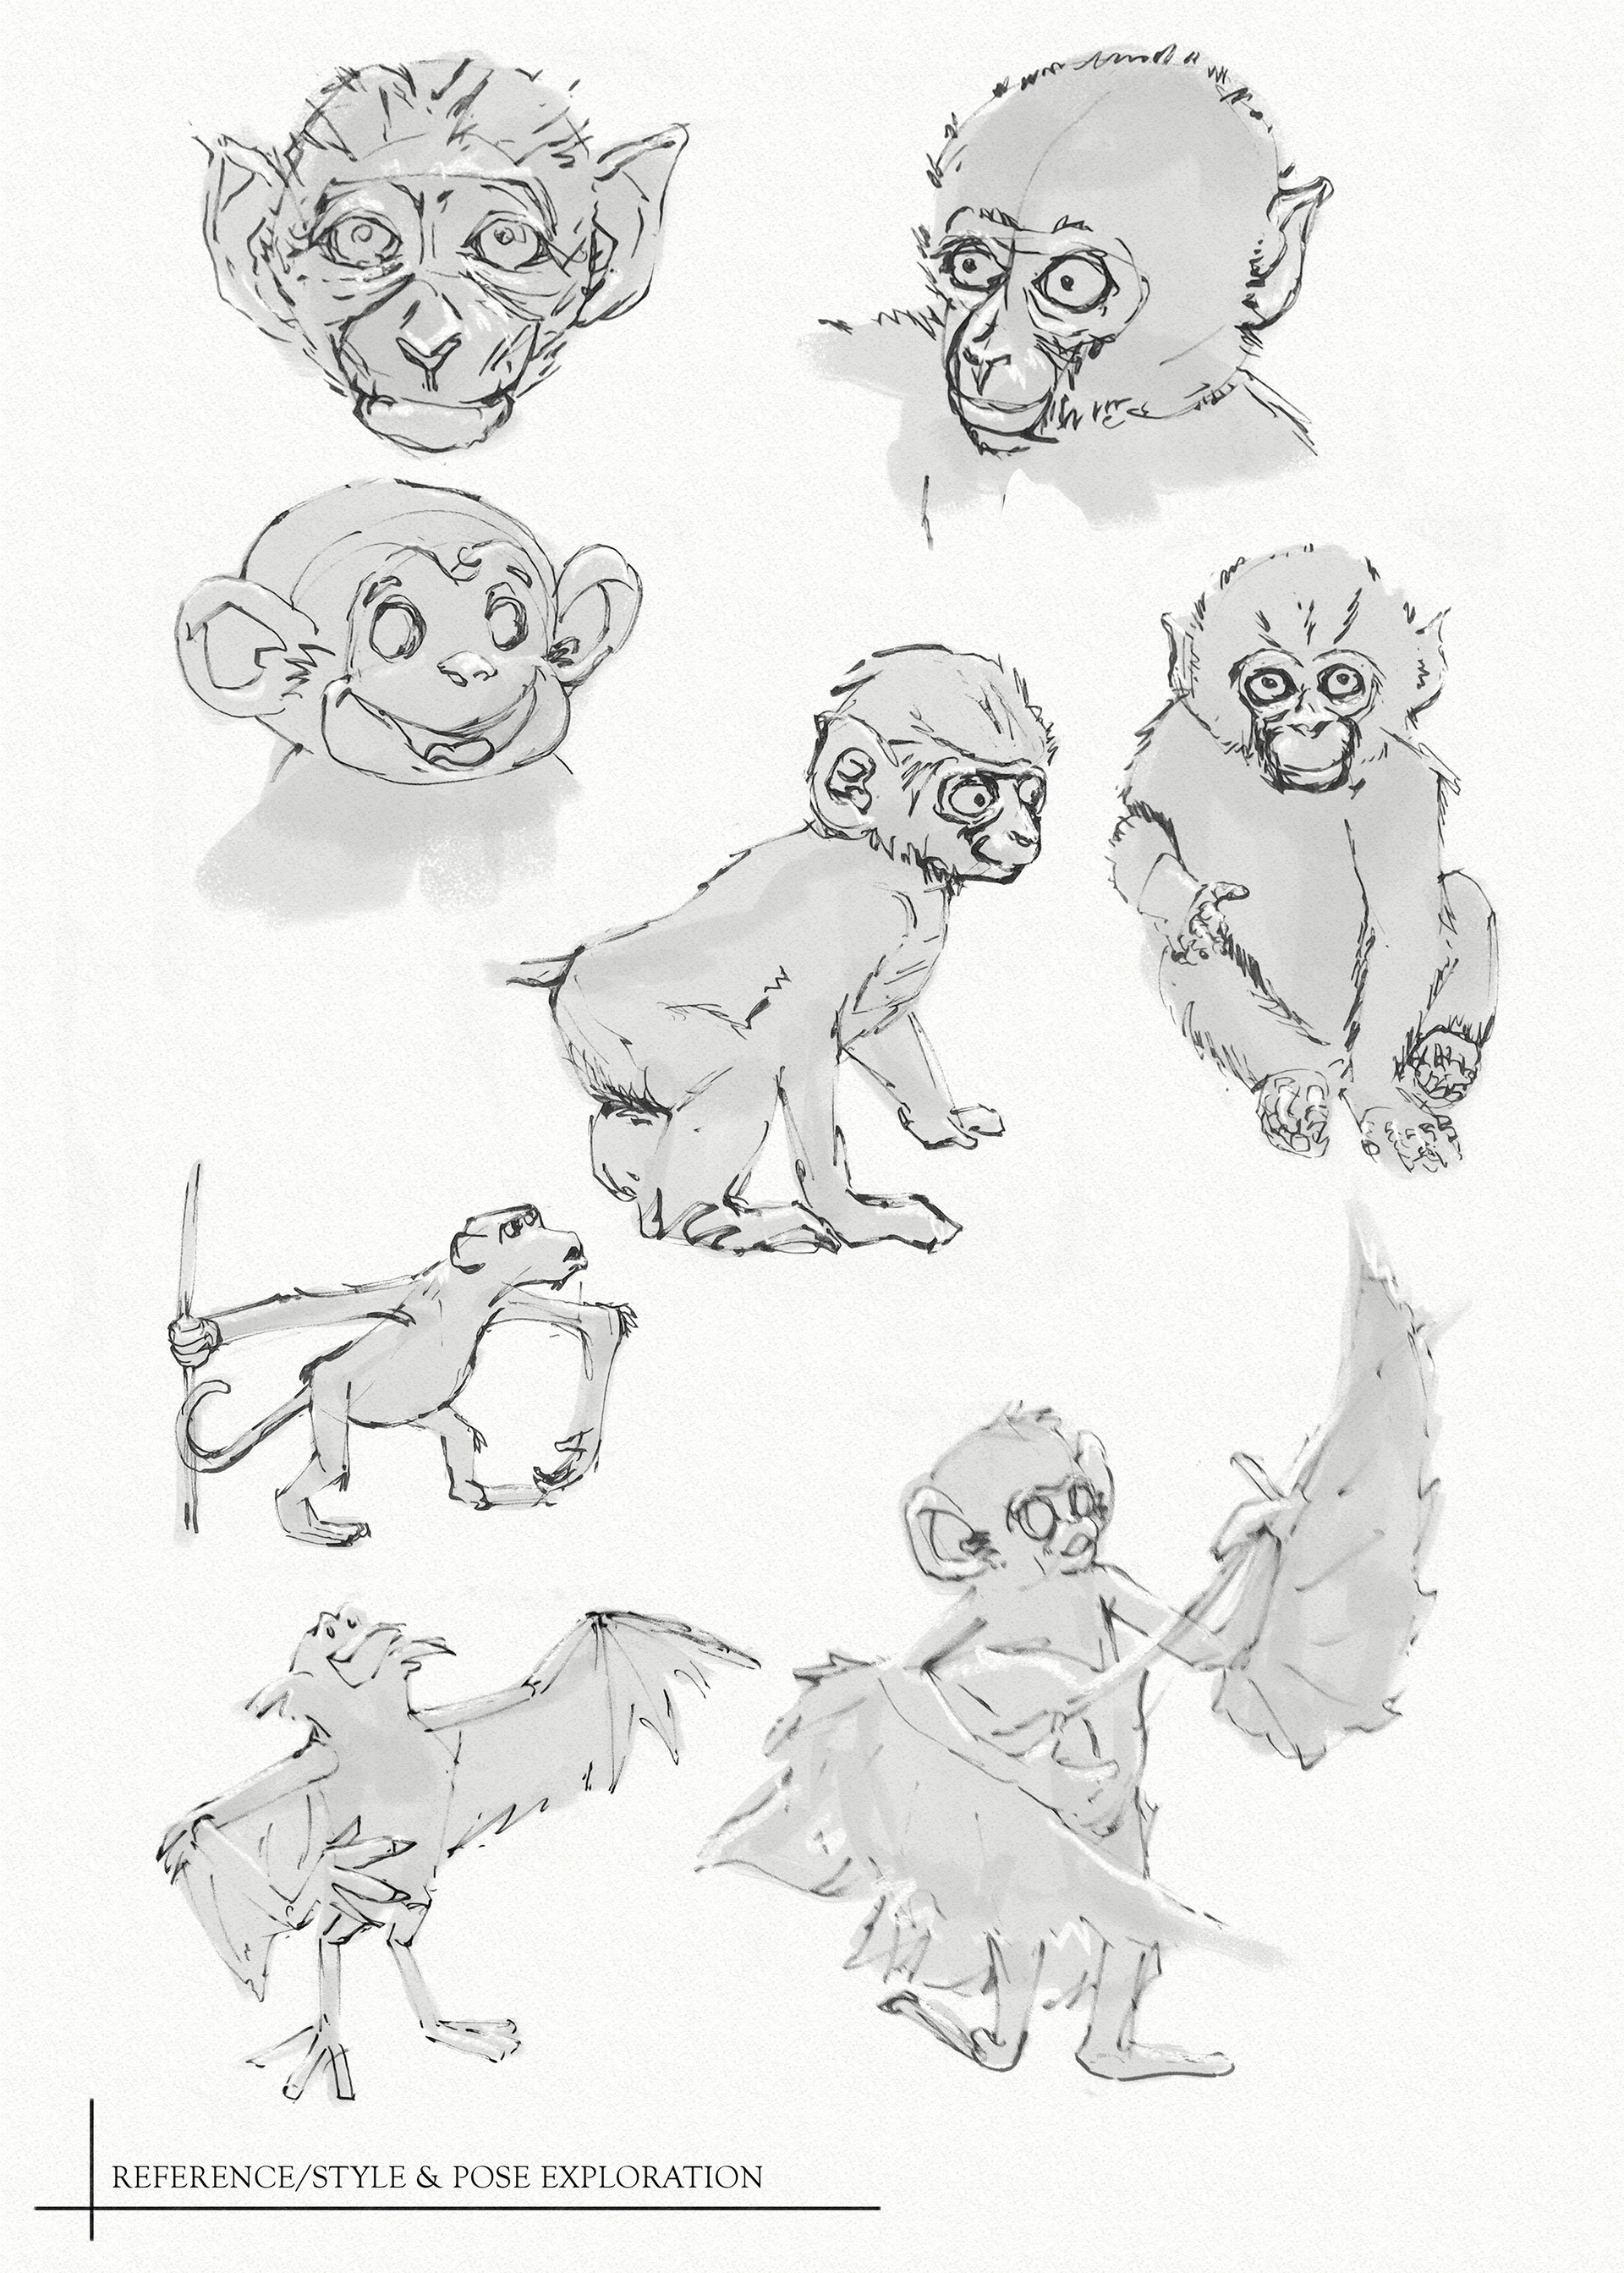 Matthew trickel monkey reference style pose exploration web